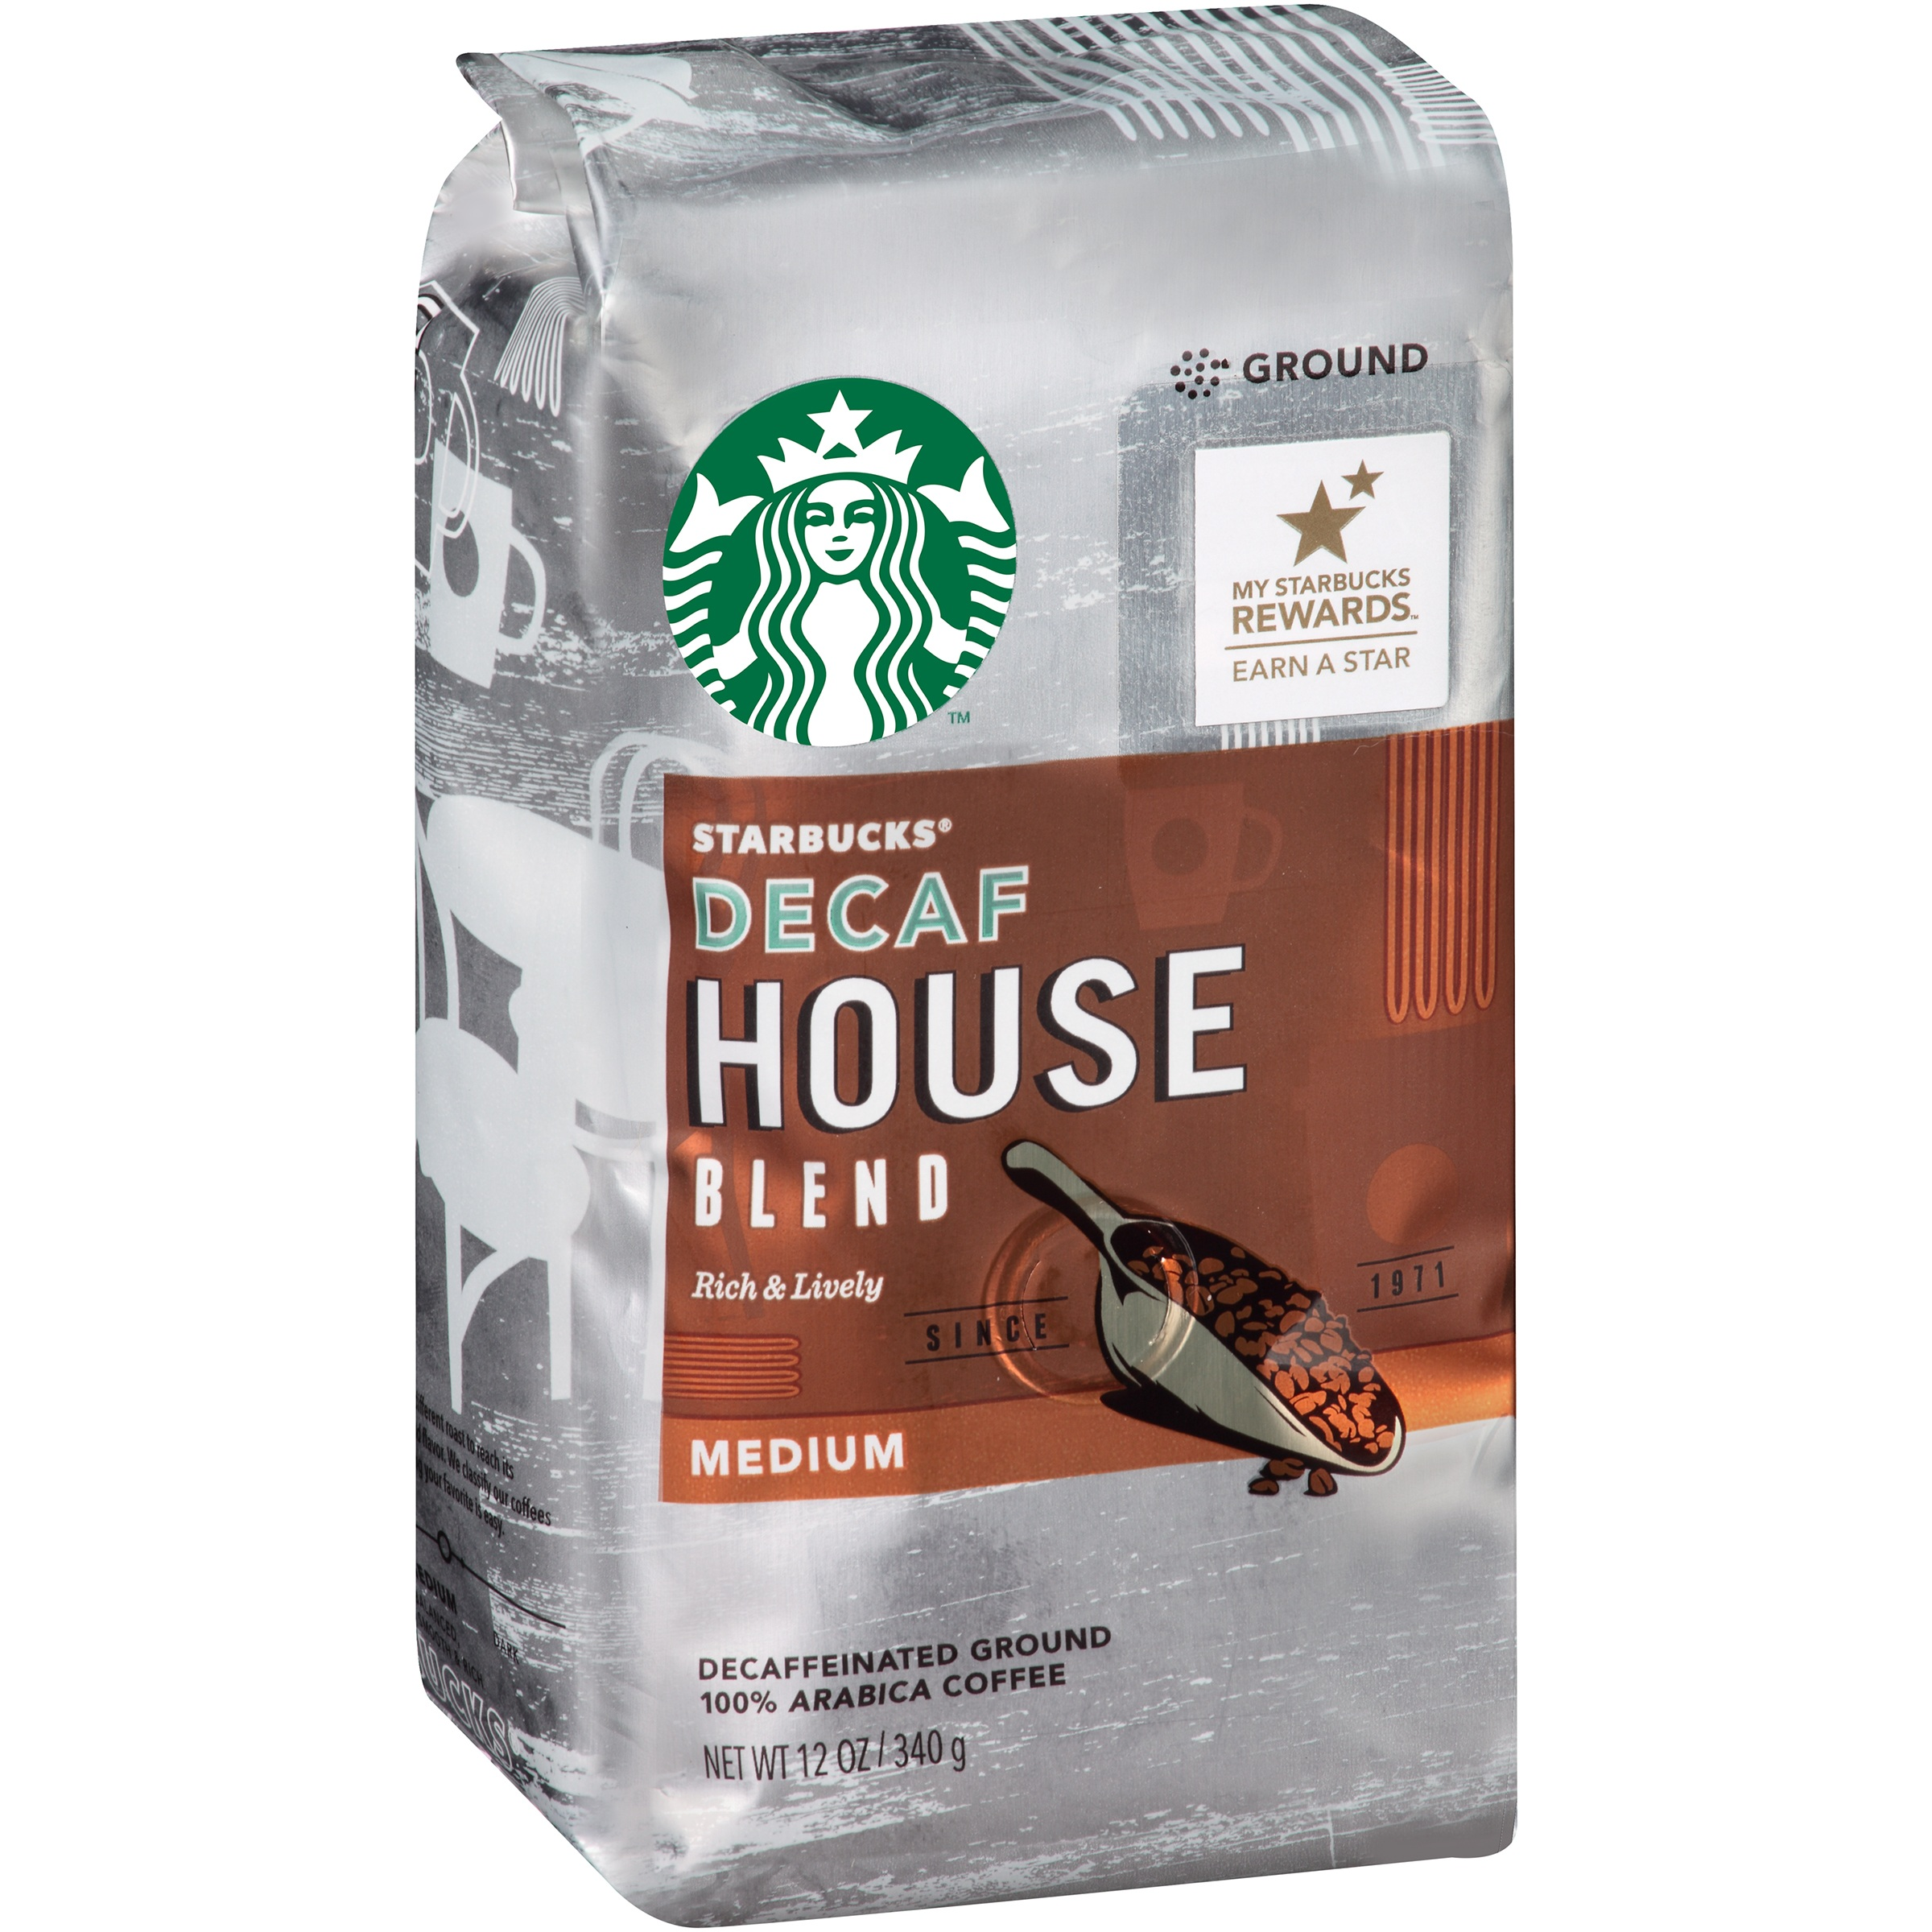 Starbucks Decaf House Blend Ground Coffee, 12 oz